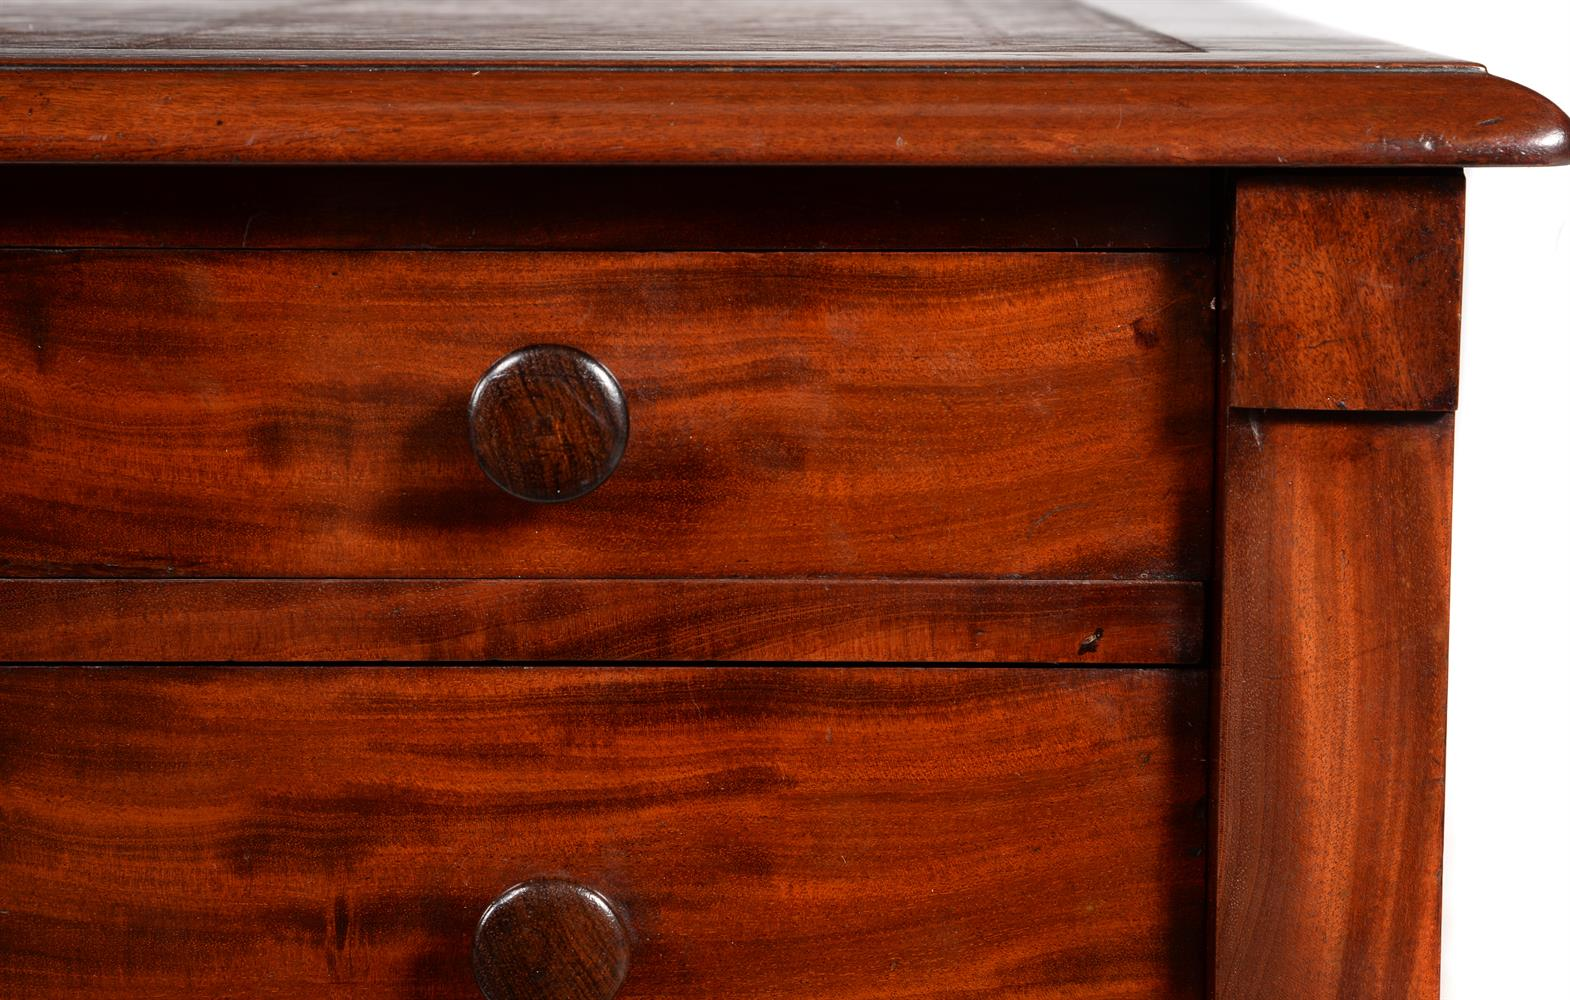 Y A GEORGE IV MAHOGANY PEDESTAL DESK, CIRCA 1830, ATTRIBUTED TO GILLOWS - Image 5 of 6